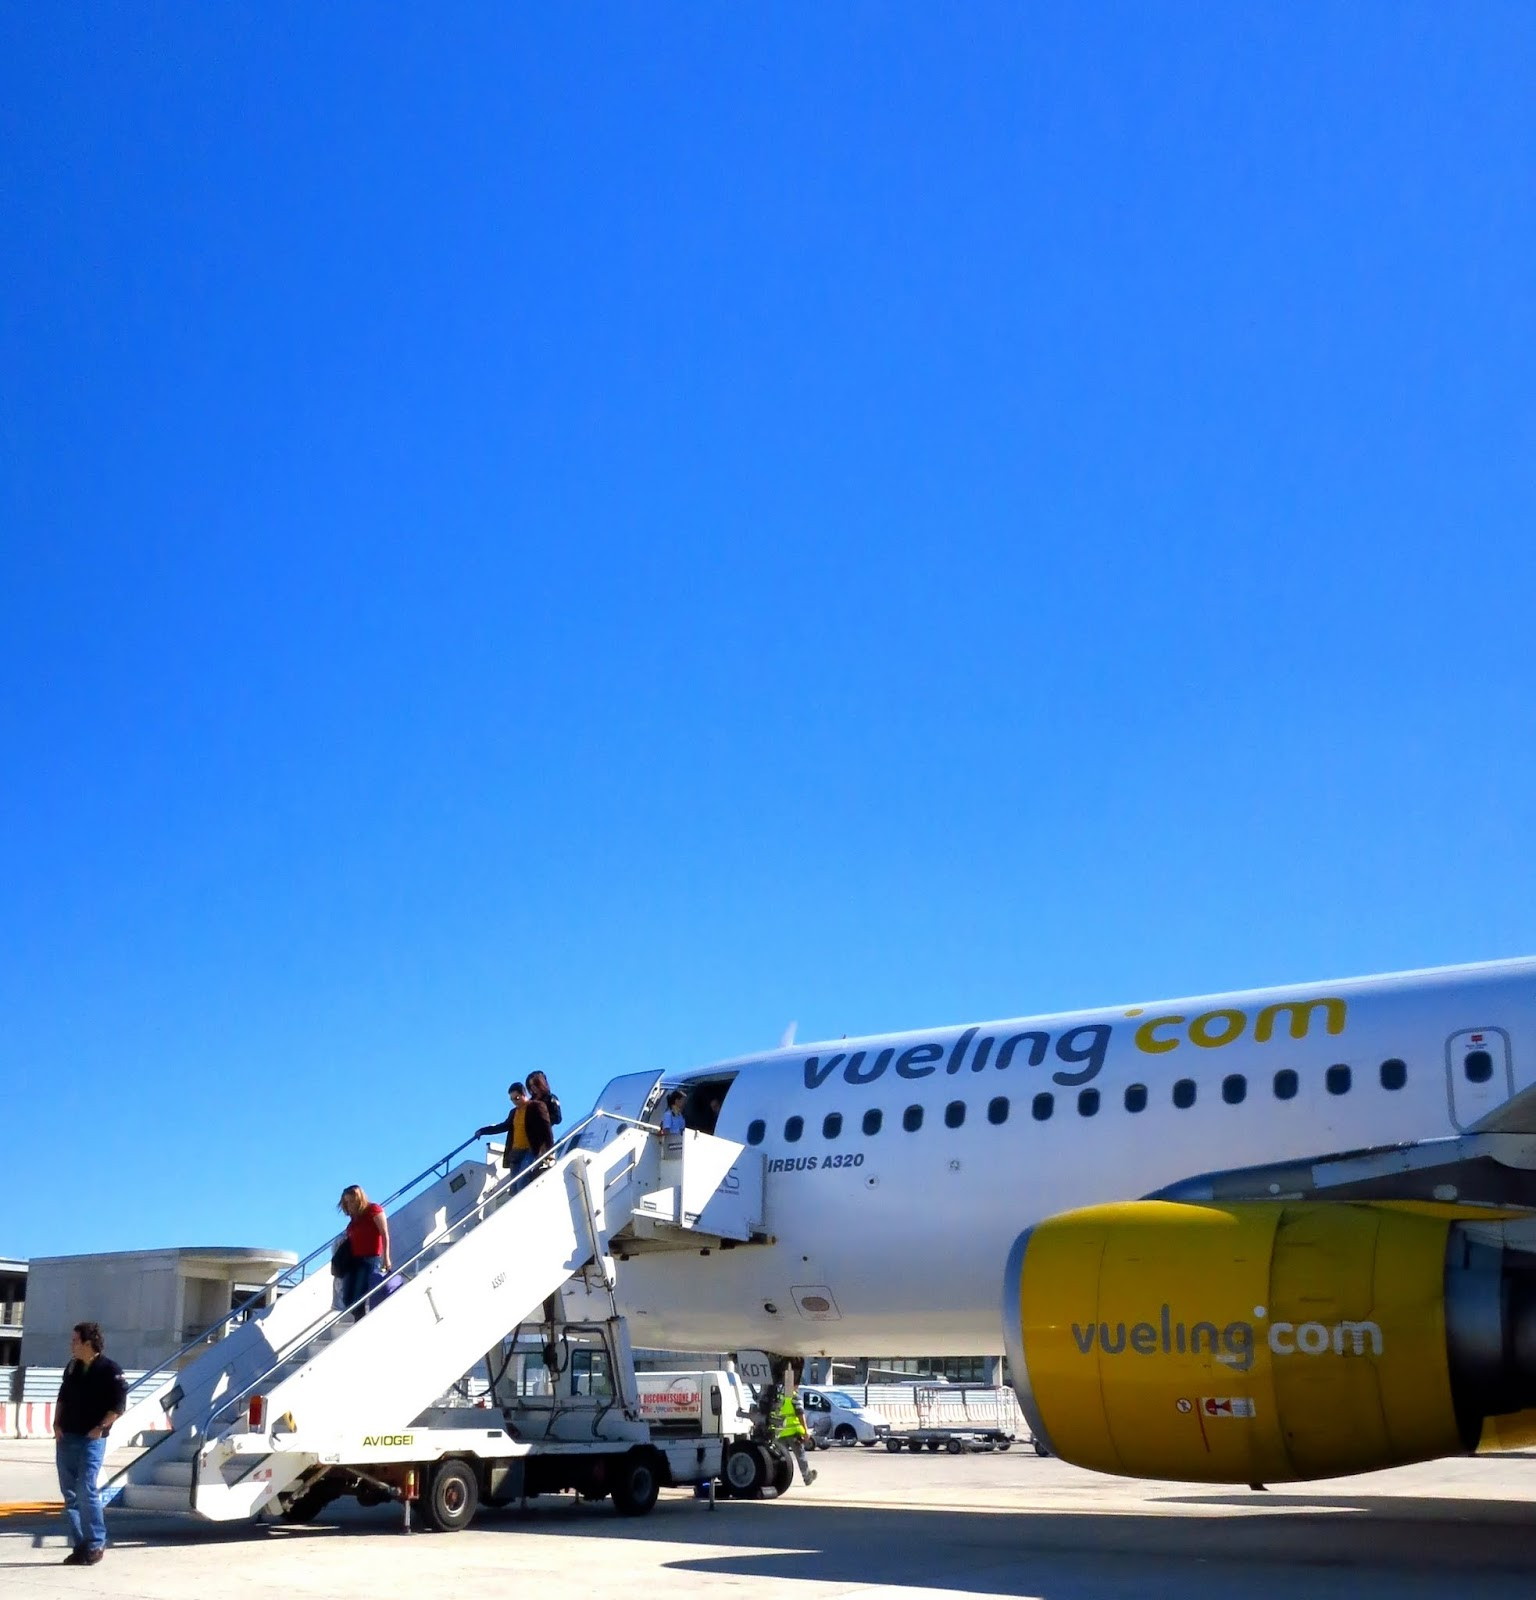 Vueling Airlines at Fiumicino Airport